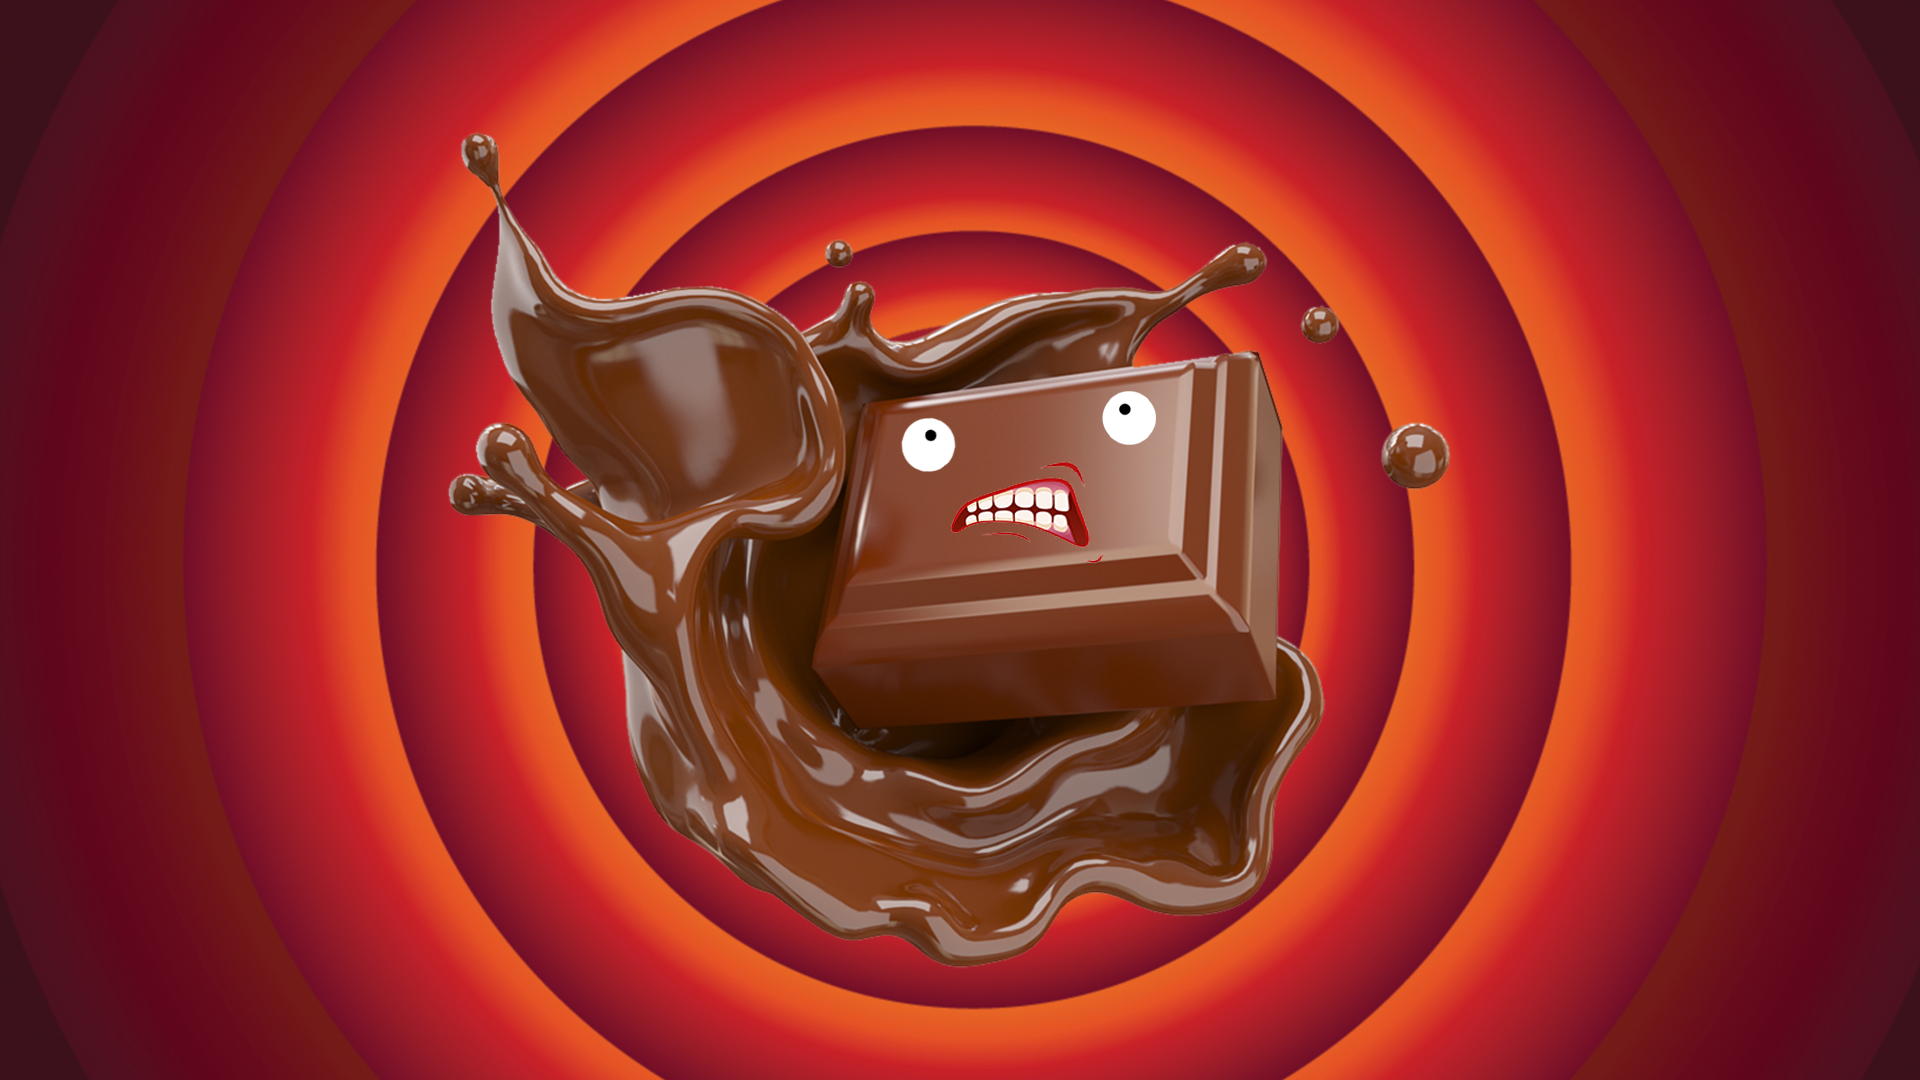 An angry looking piece of chocolate in front of an orange and red back background